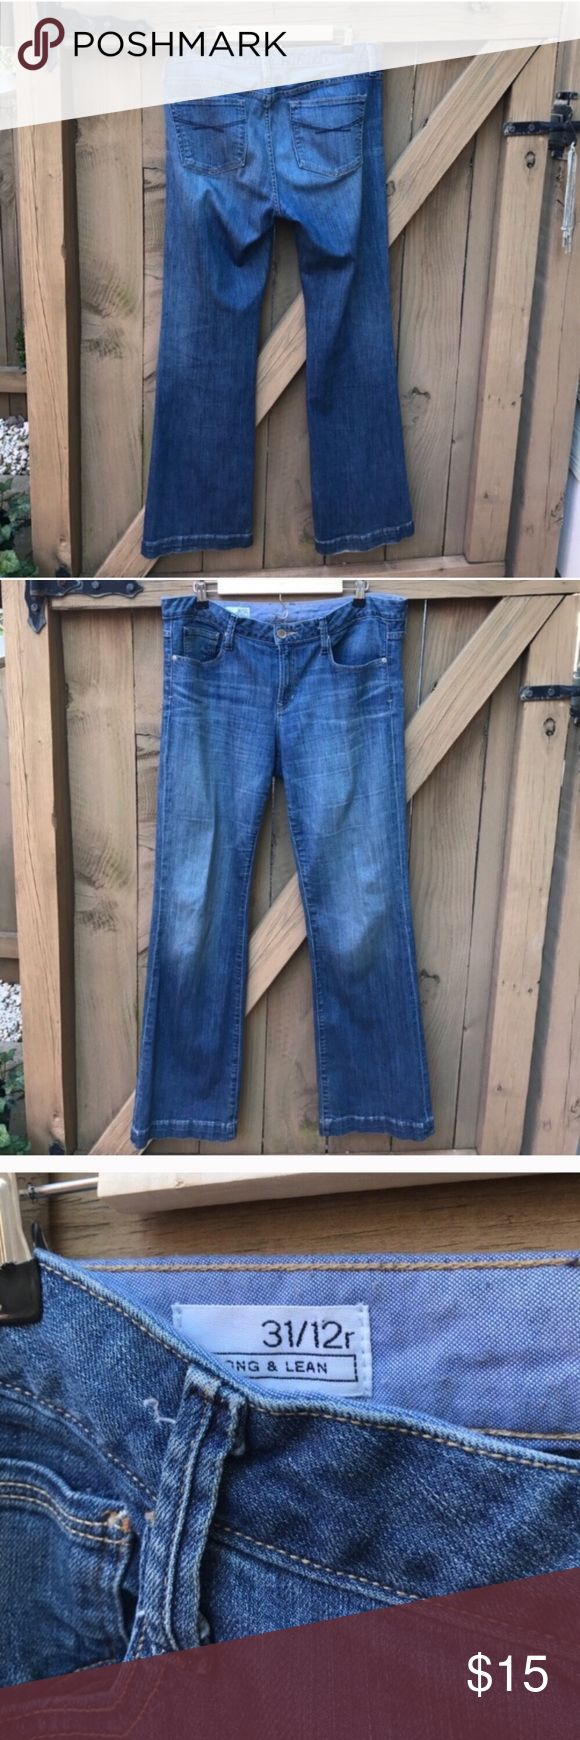 Size 12 long and lean Gap boot cut jeans Size 12 long and lean Gap jeans GAP Jeans Boot Cut